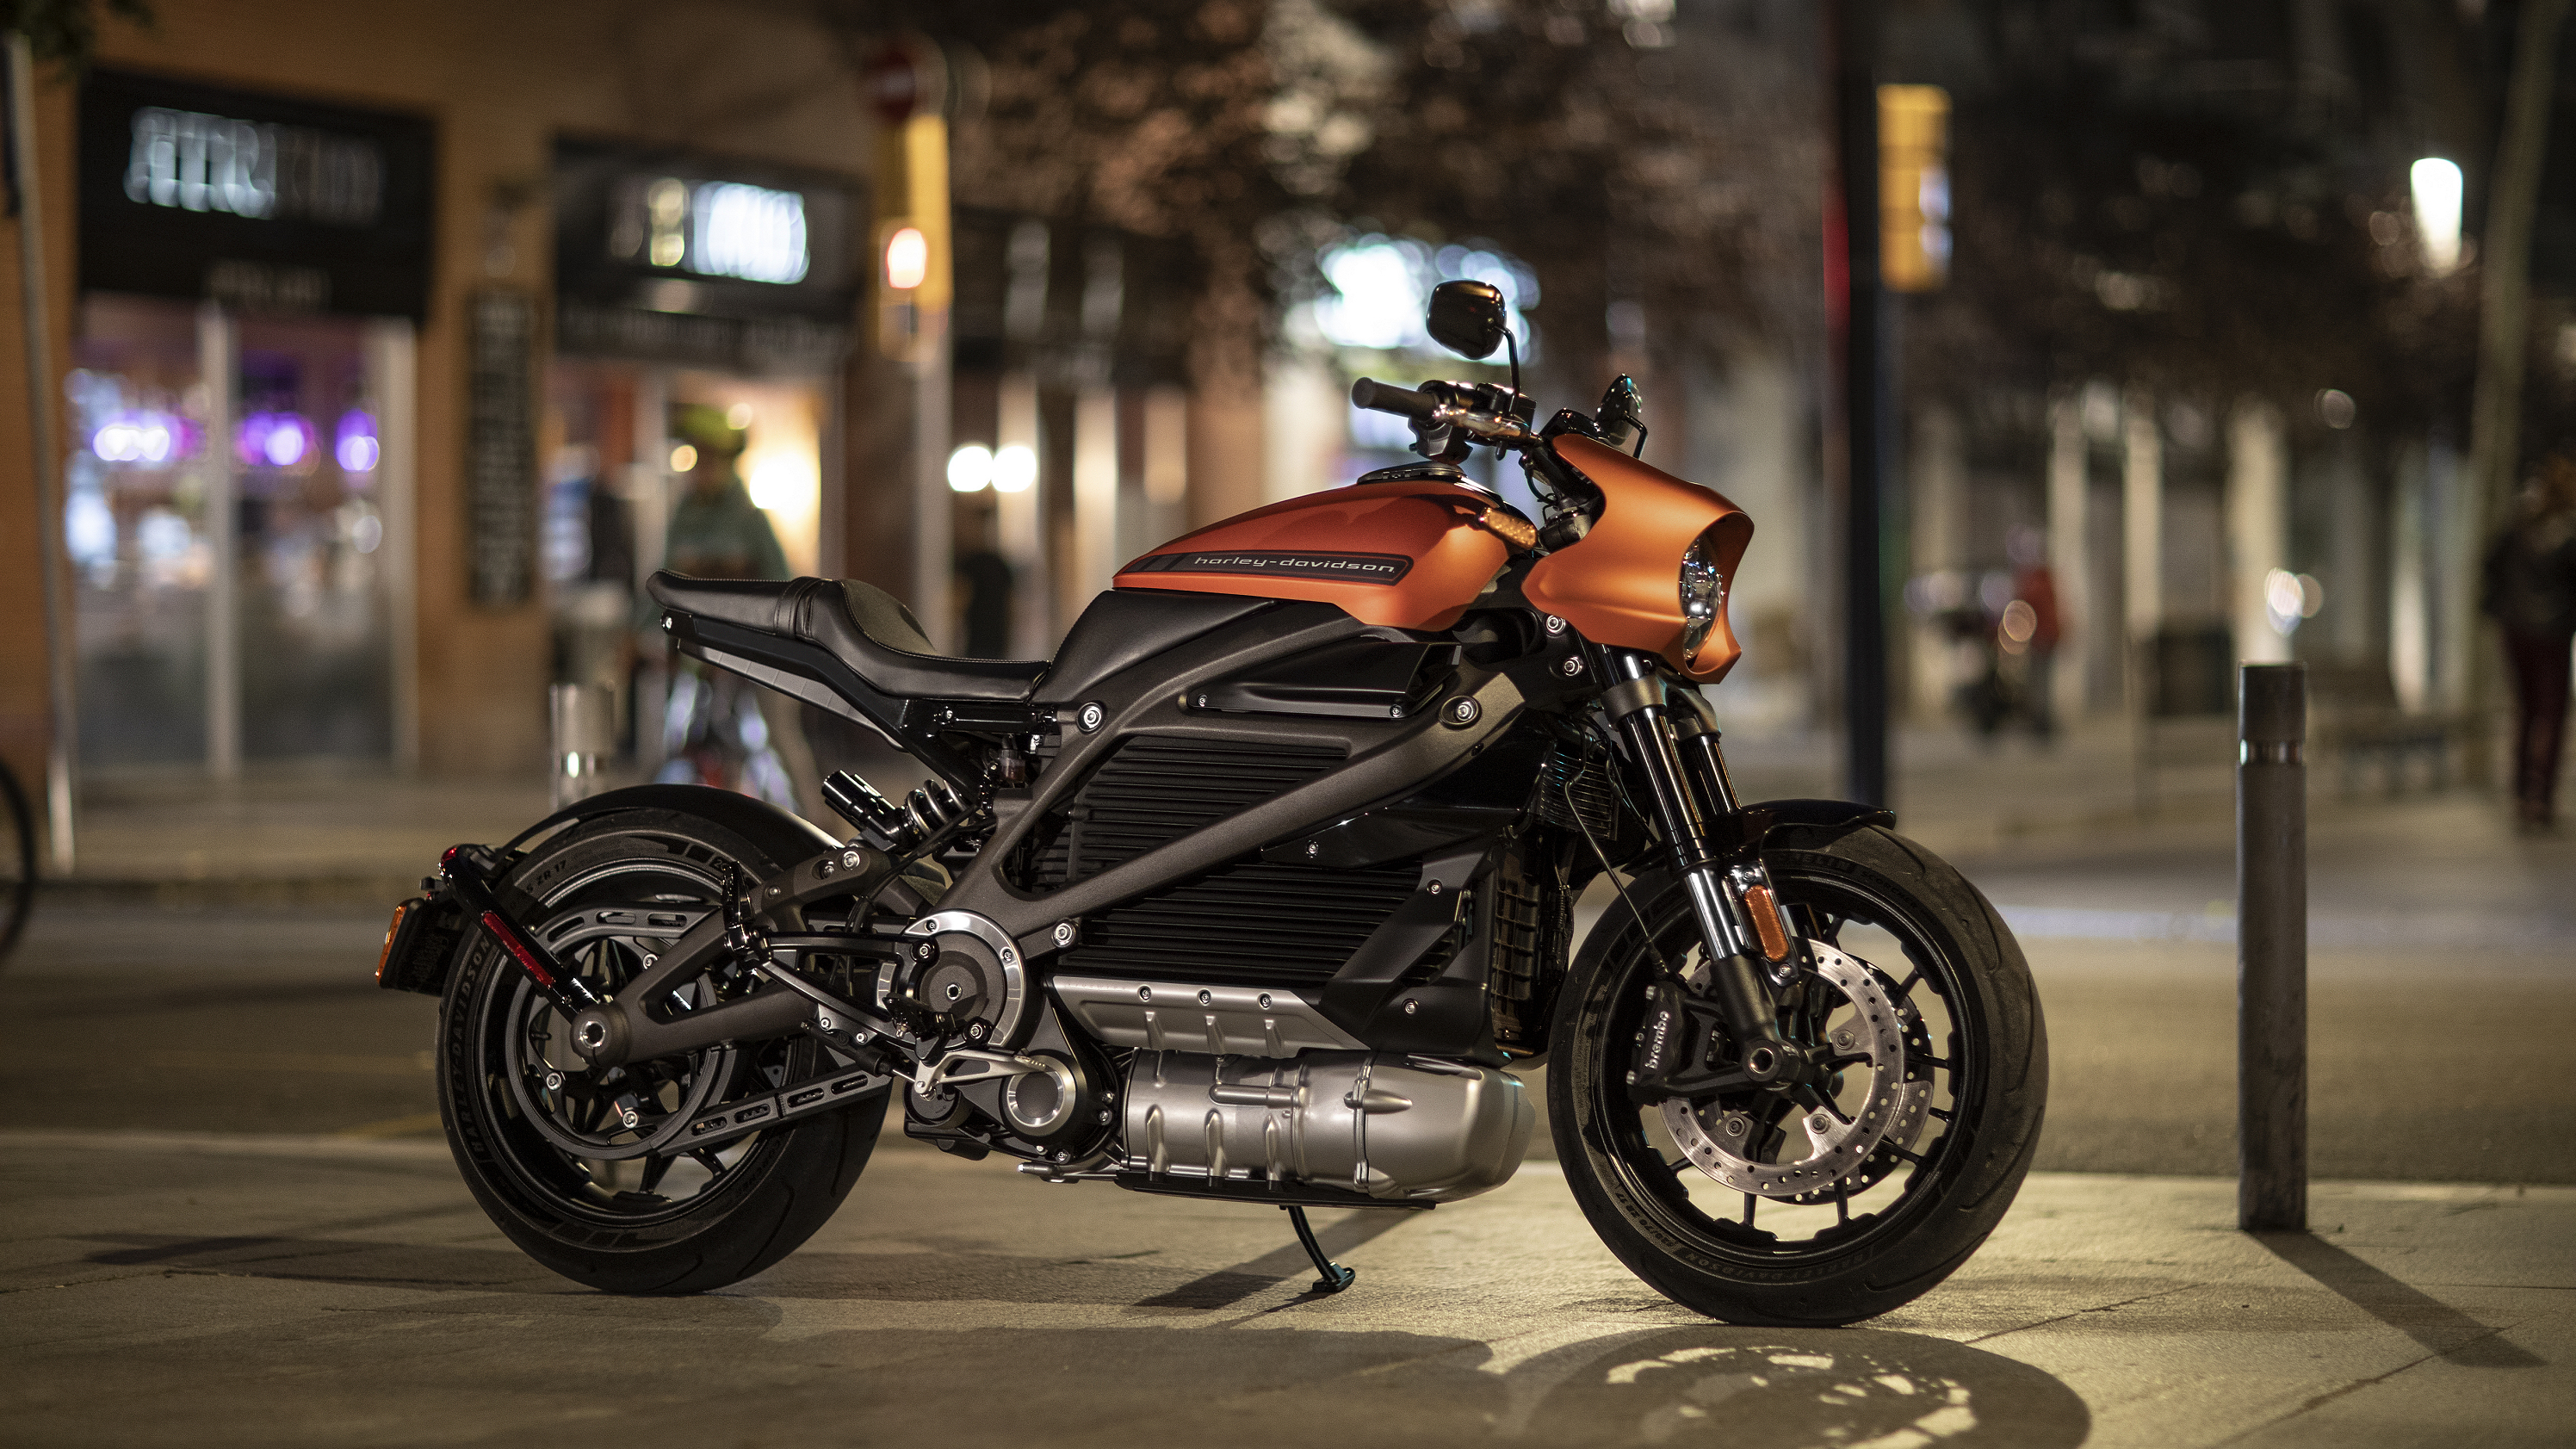 2019 Harley Davidson Livewire Pictures Photos Wallpapers